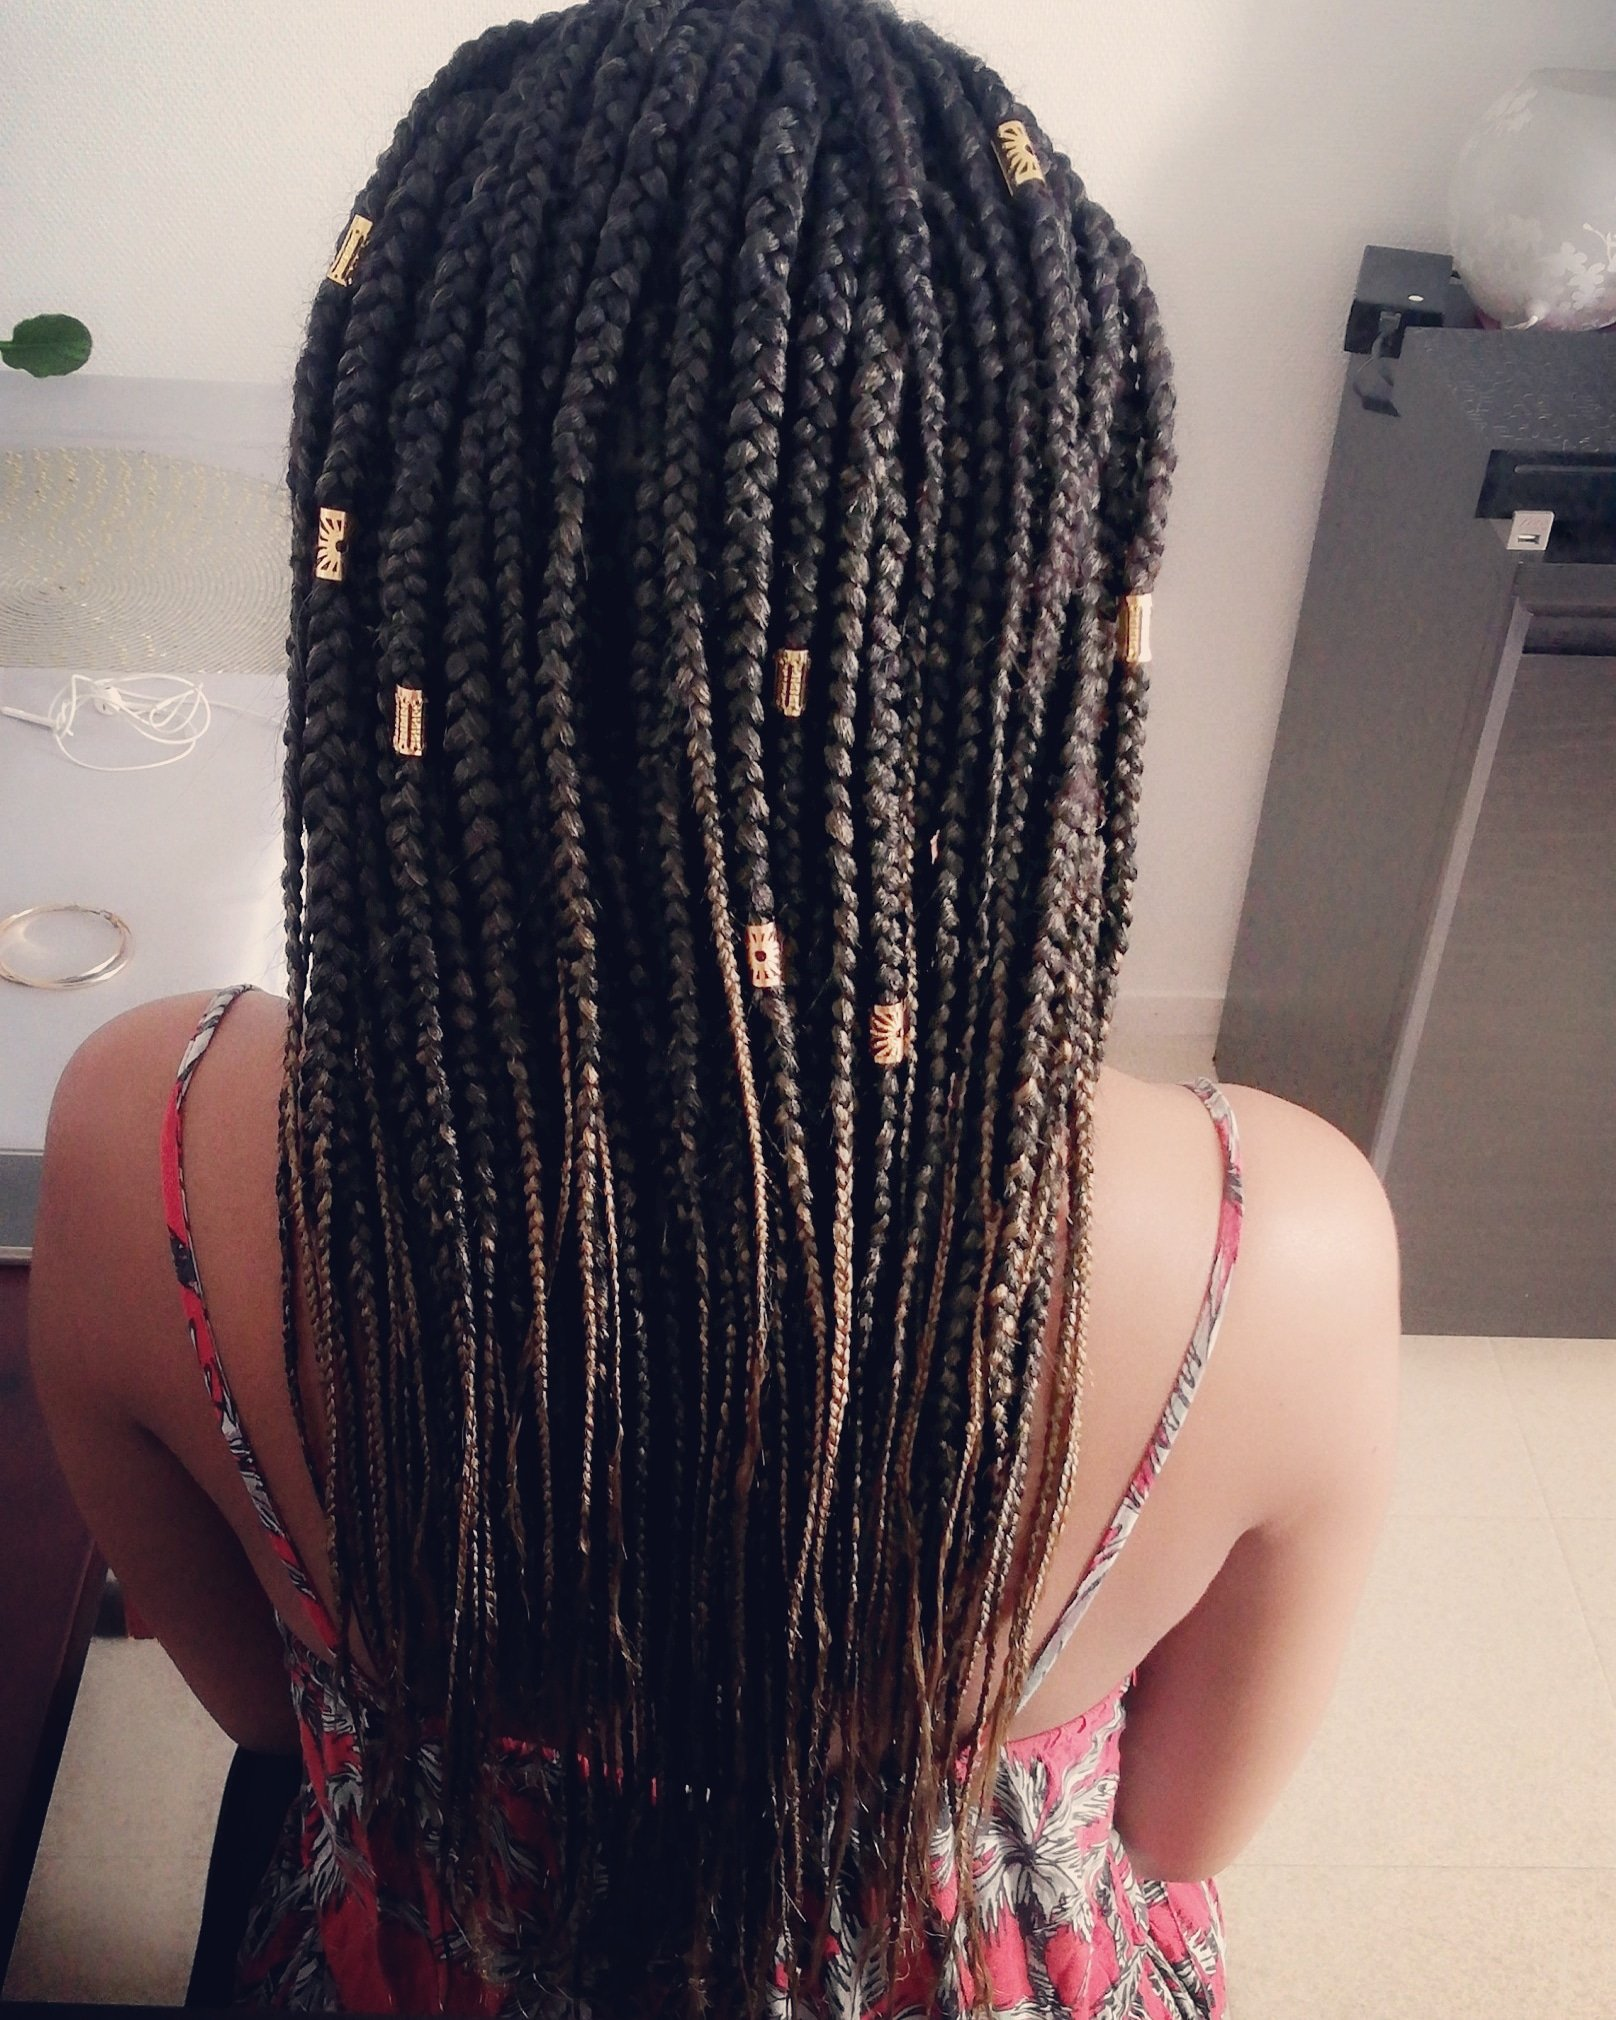 salon de coiffure afro tresse tresses box braids crochet braids vanilles tissages paris 75 77 78 91 92 93 94 95 EMGMVDLD